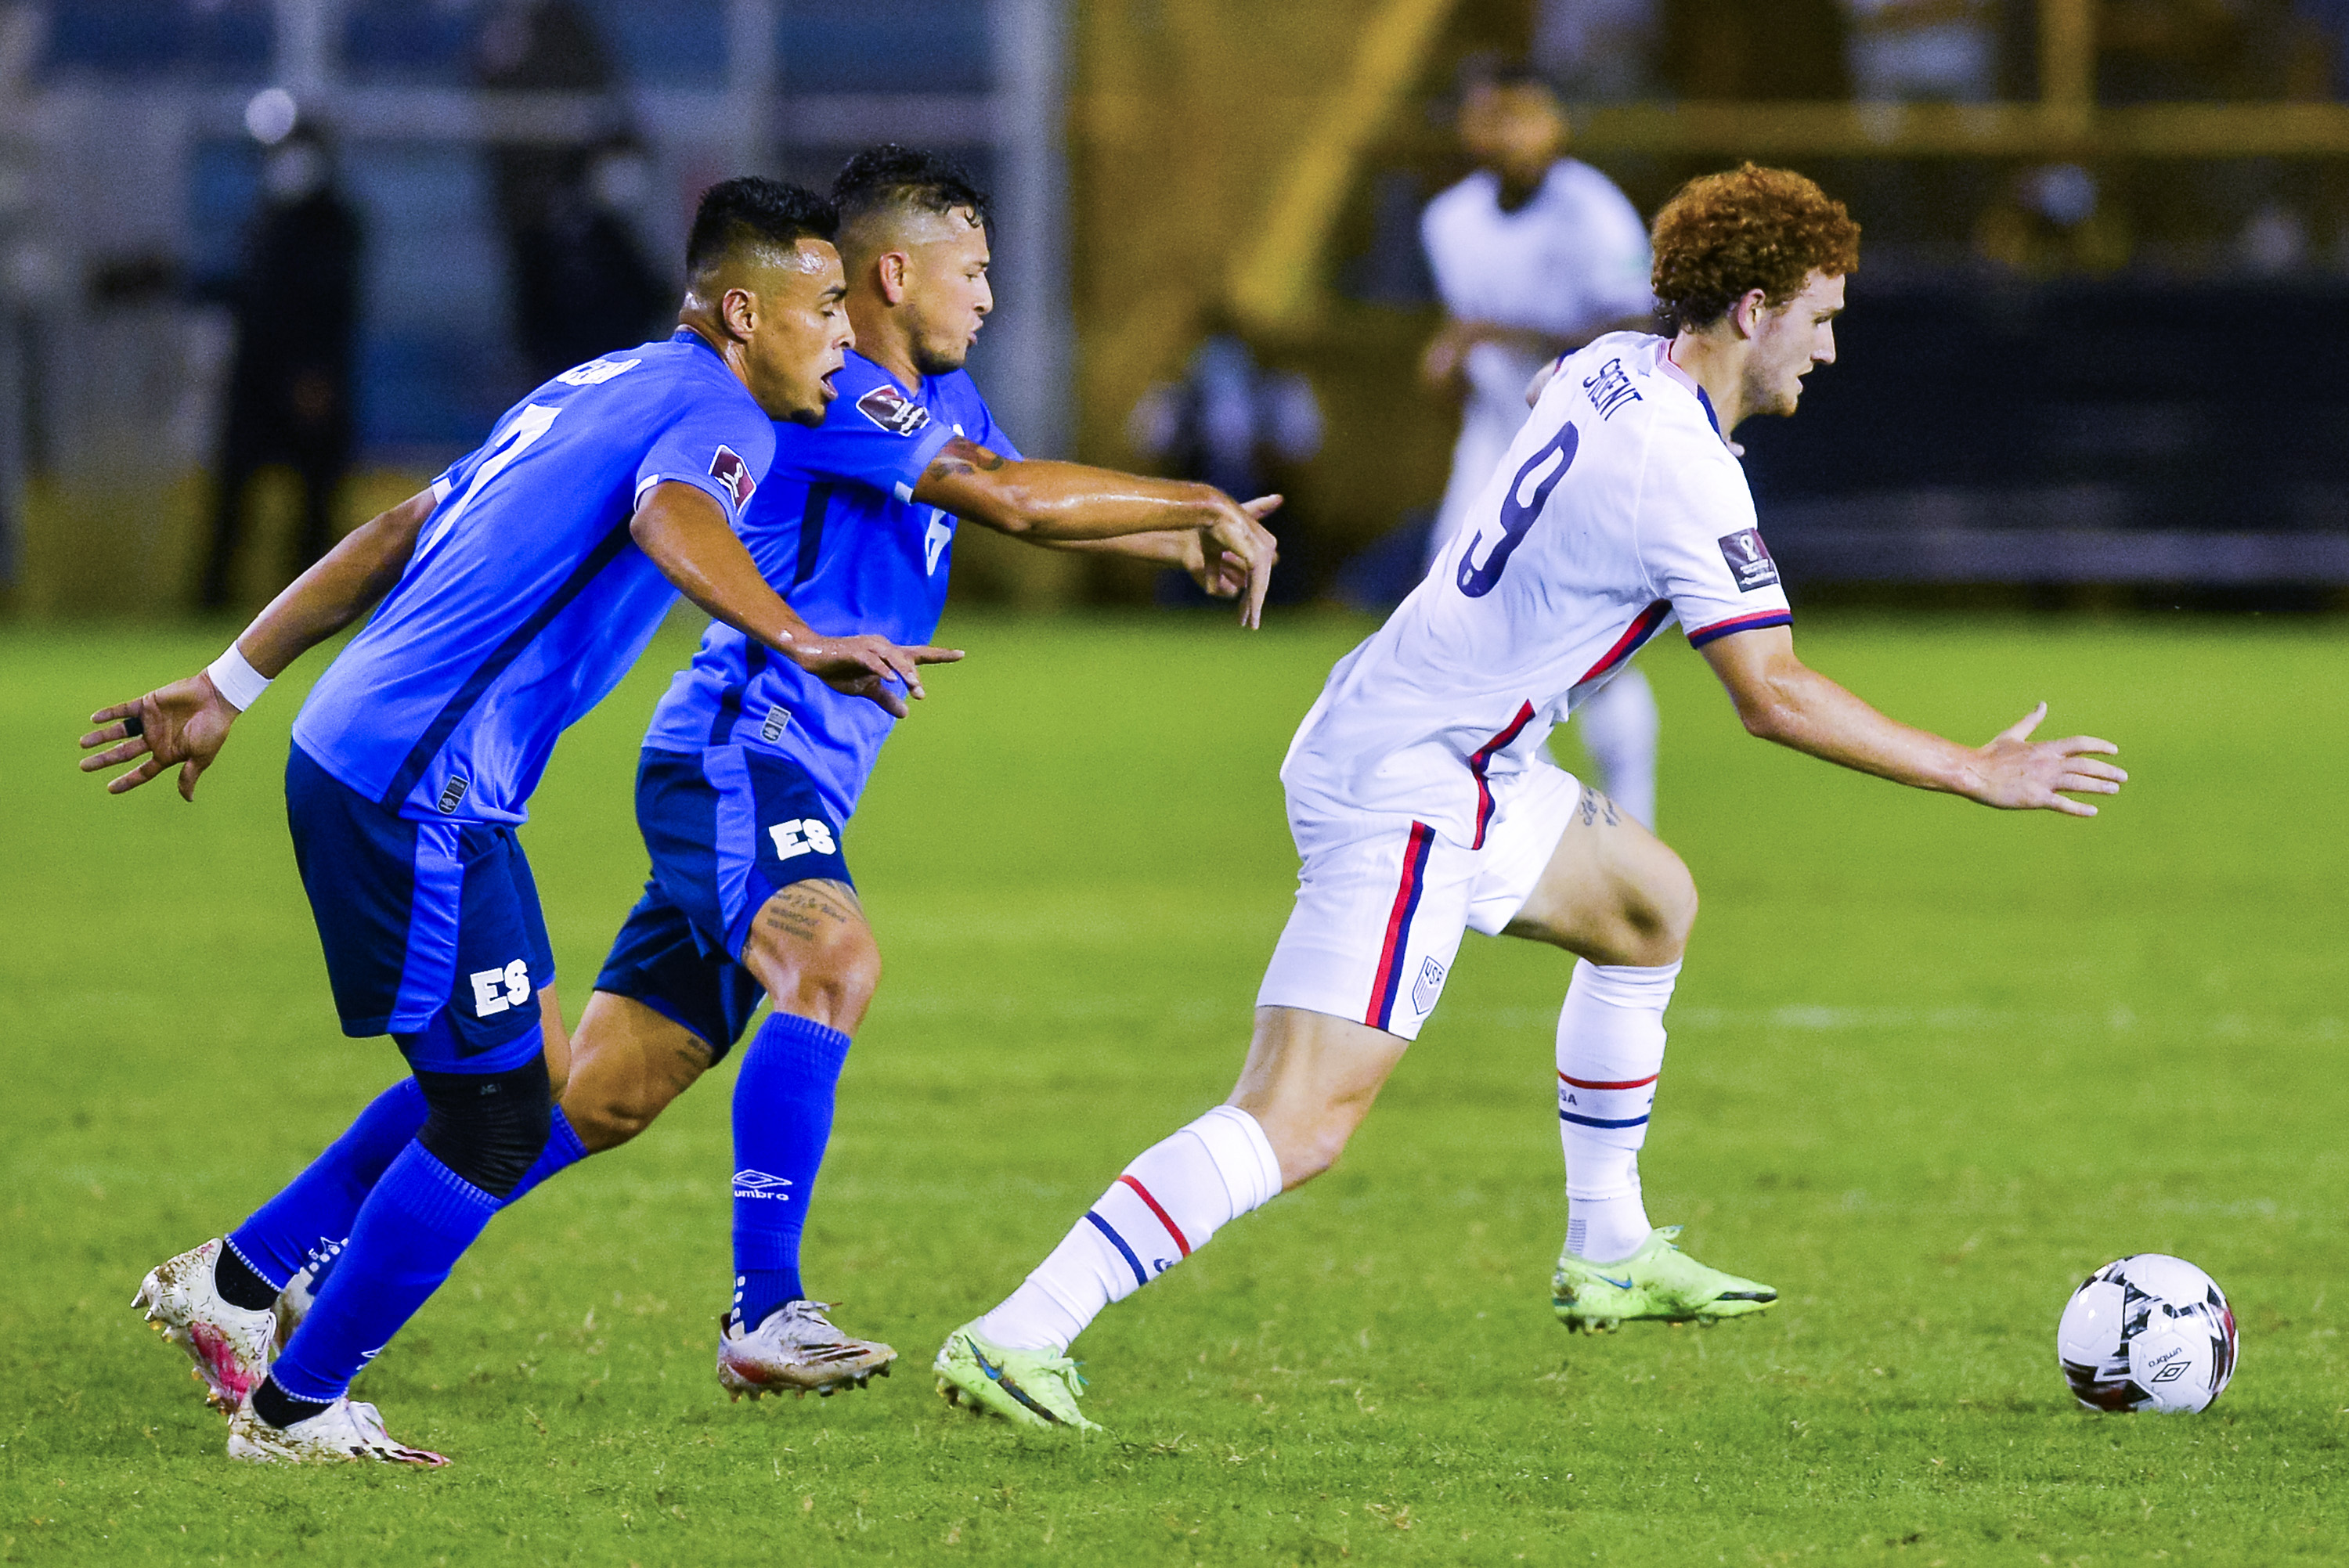 josh-sargent-features-for-usa-as-they-go-up-to-third-in-qualifying-group